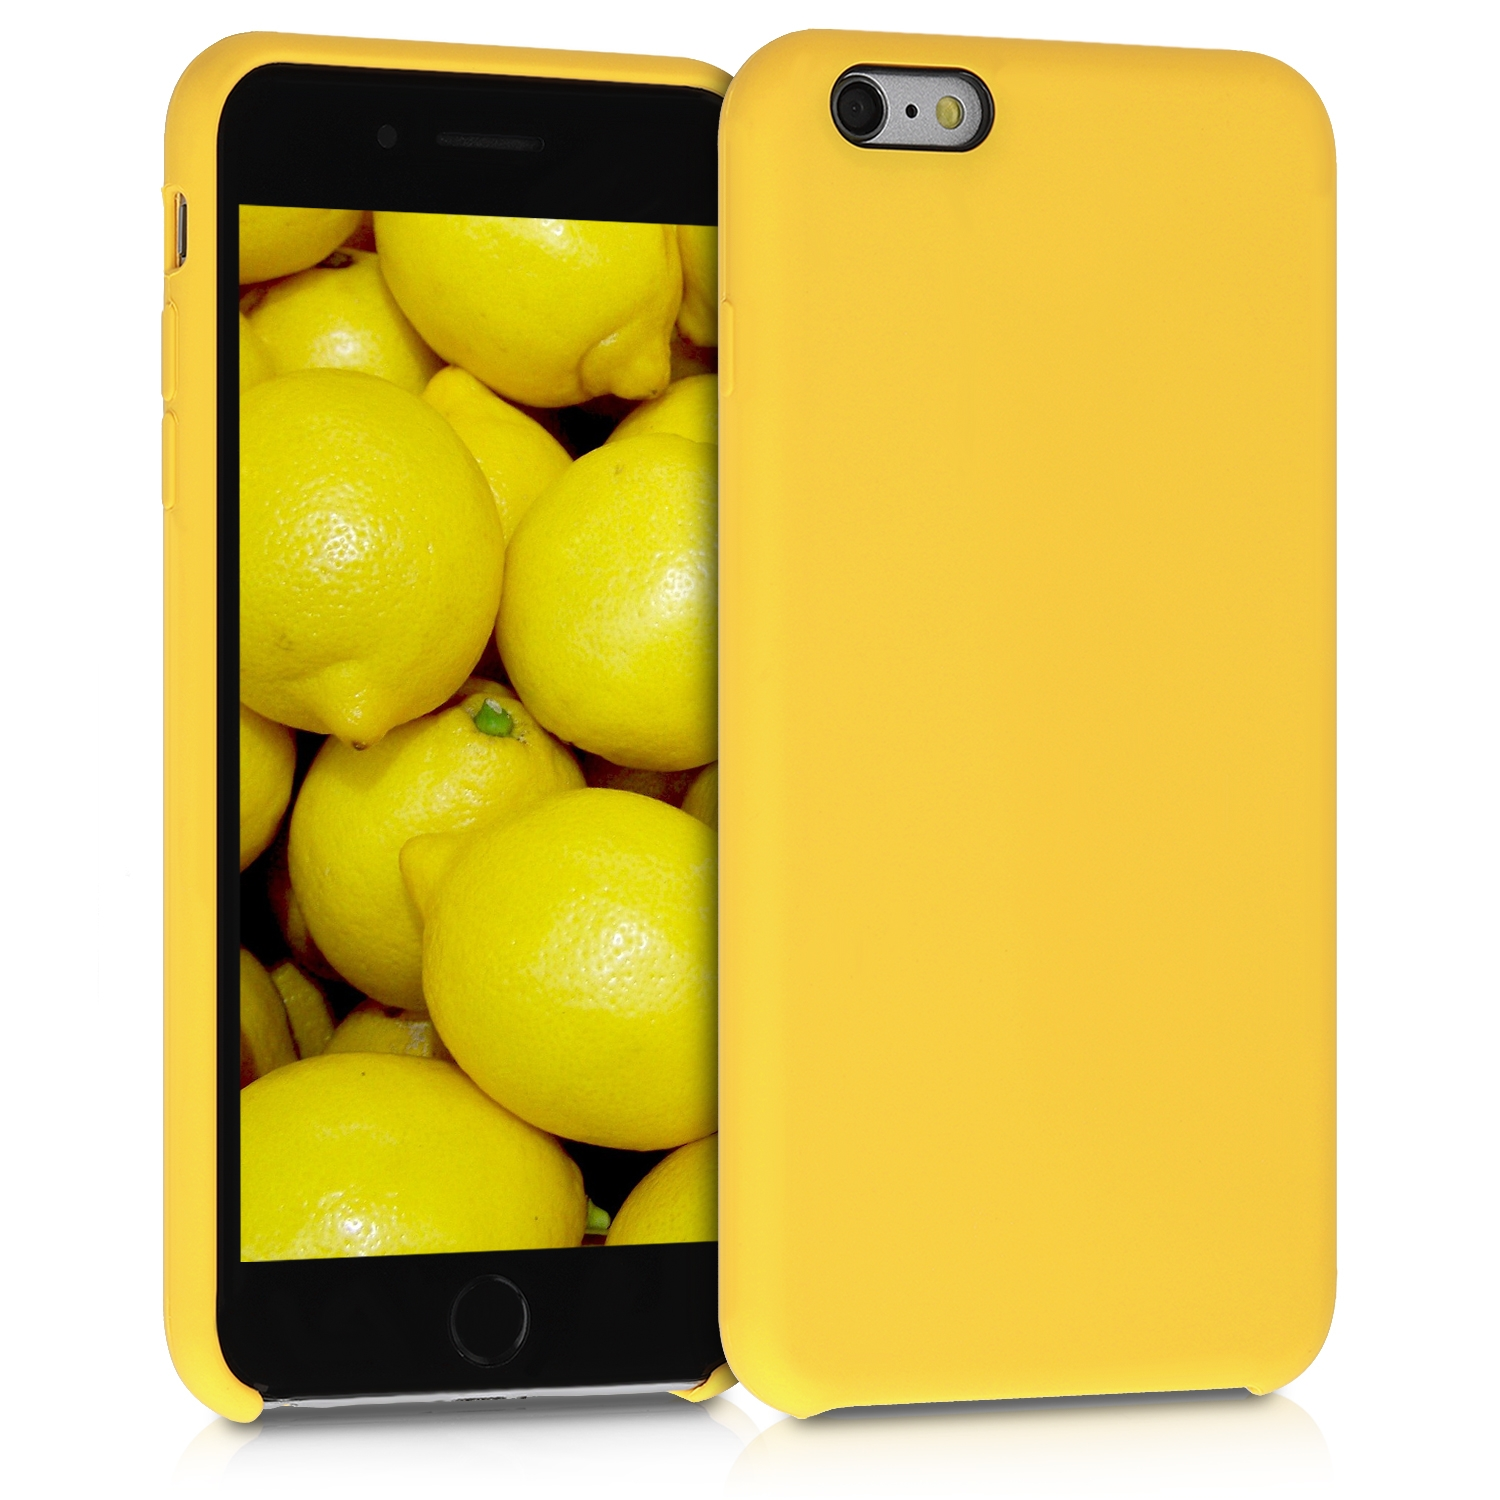 KW Θήκη Σιλικόνης Apple iPhone 6 Plus / 6S Plus - Soft Flexible Rubber Protective Cover - Honey Yellow (40841.143)